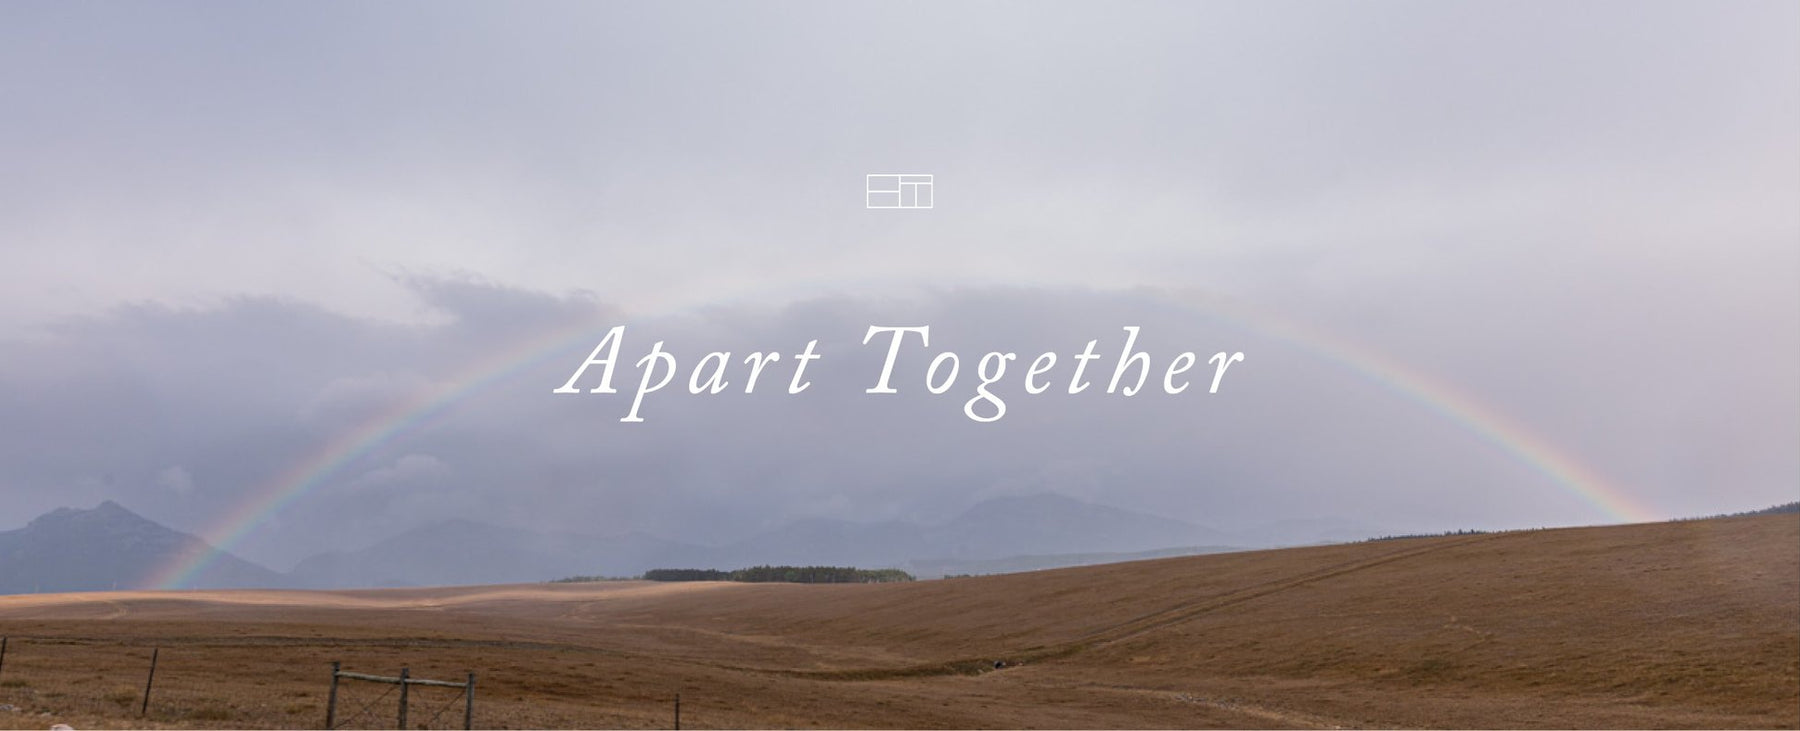 Brooklyn Tweed: Apart Together